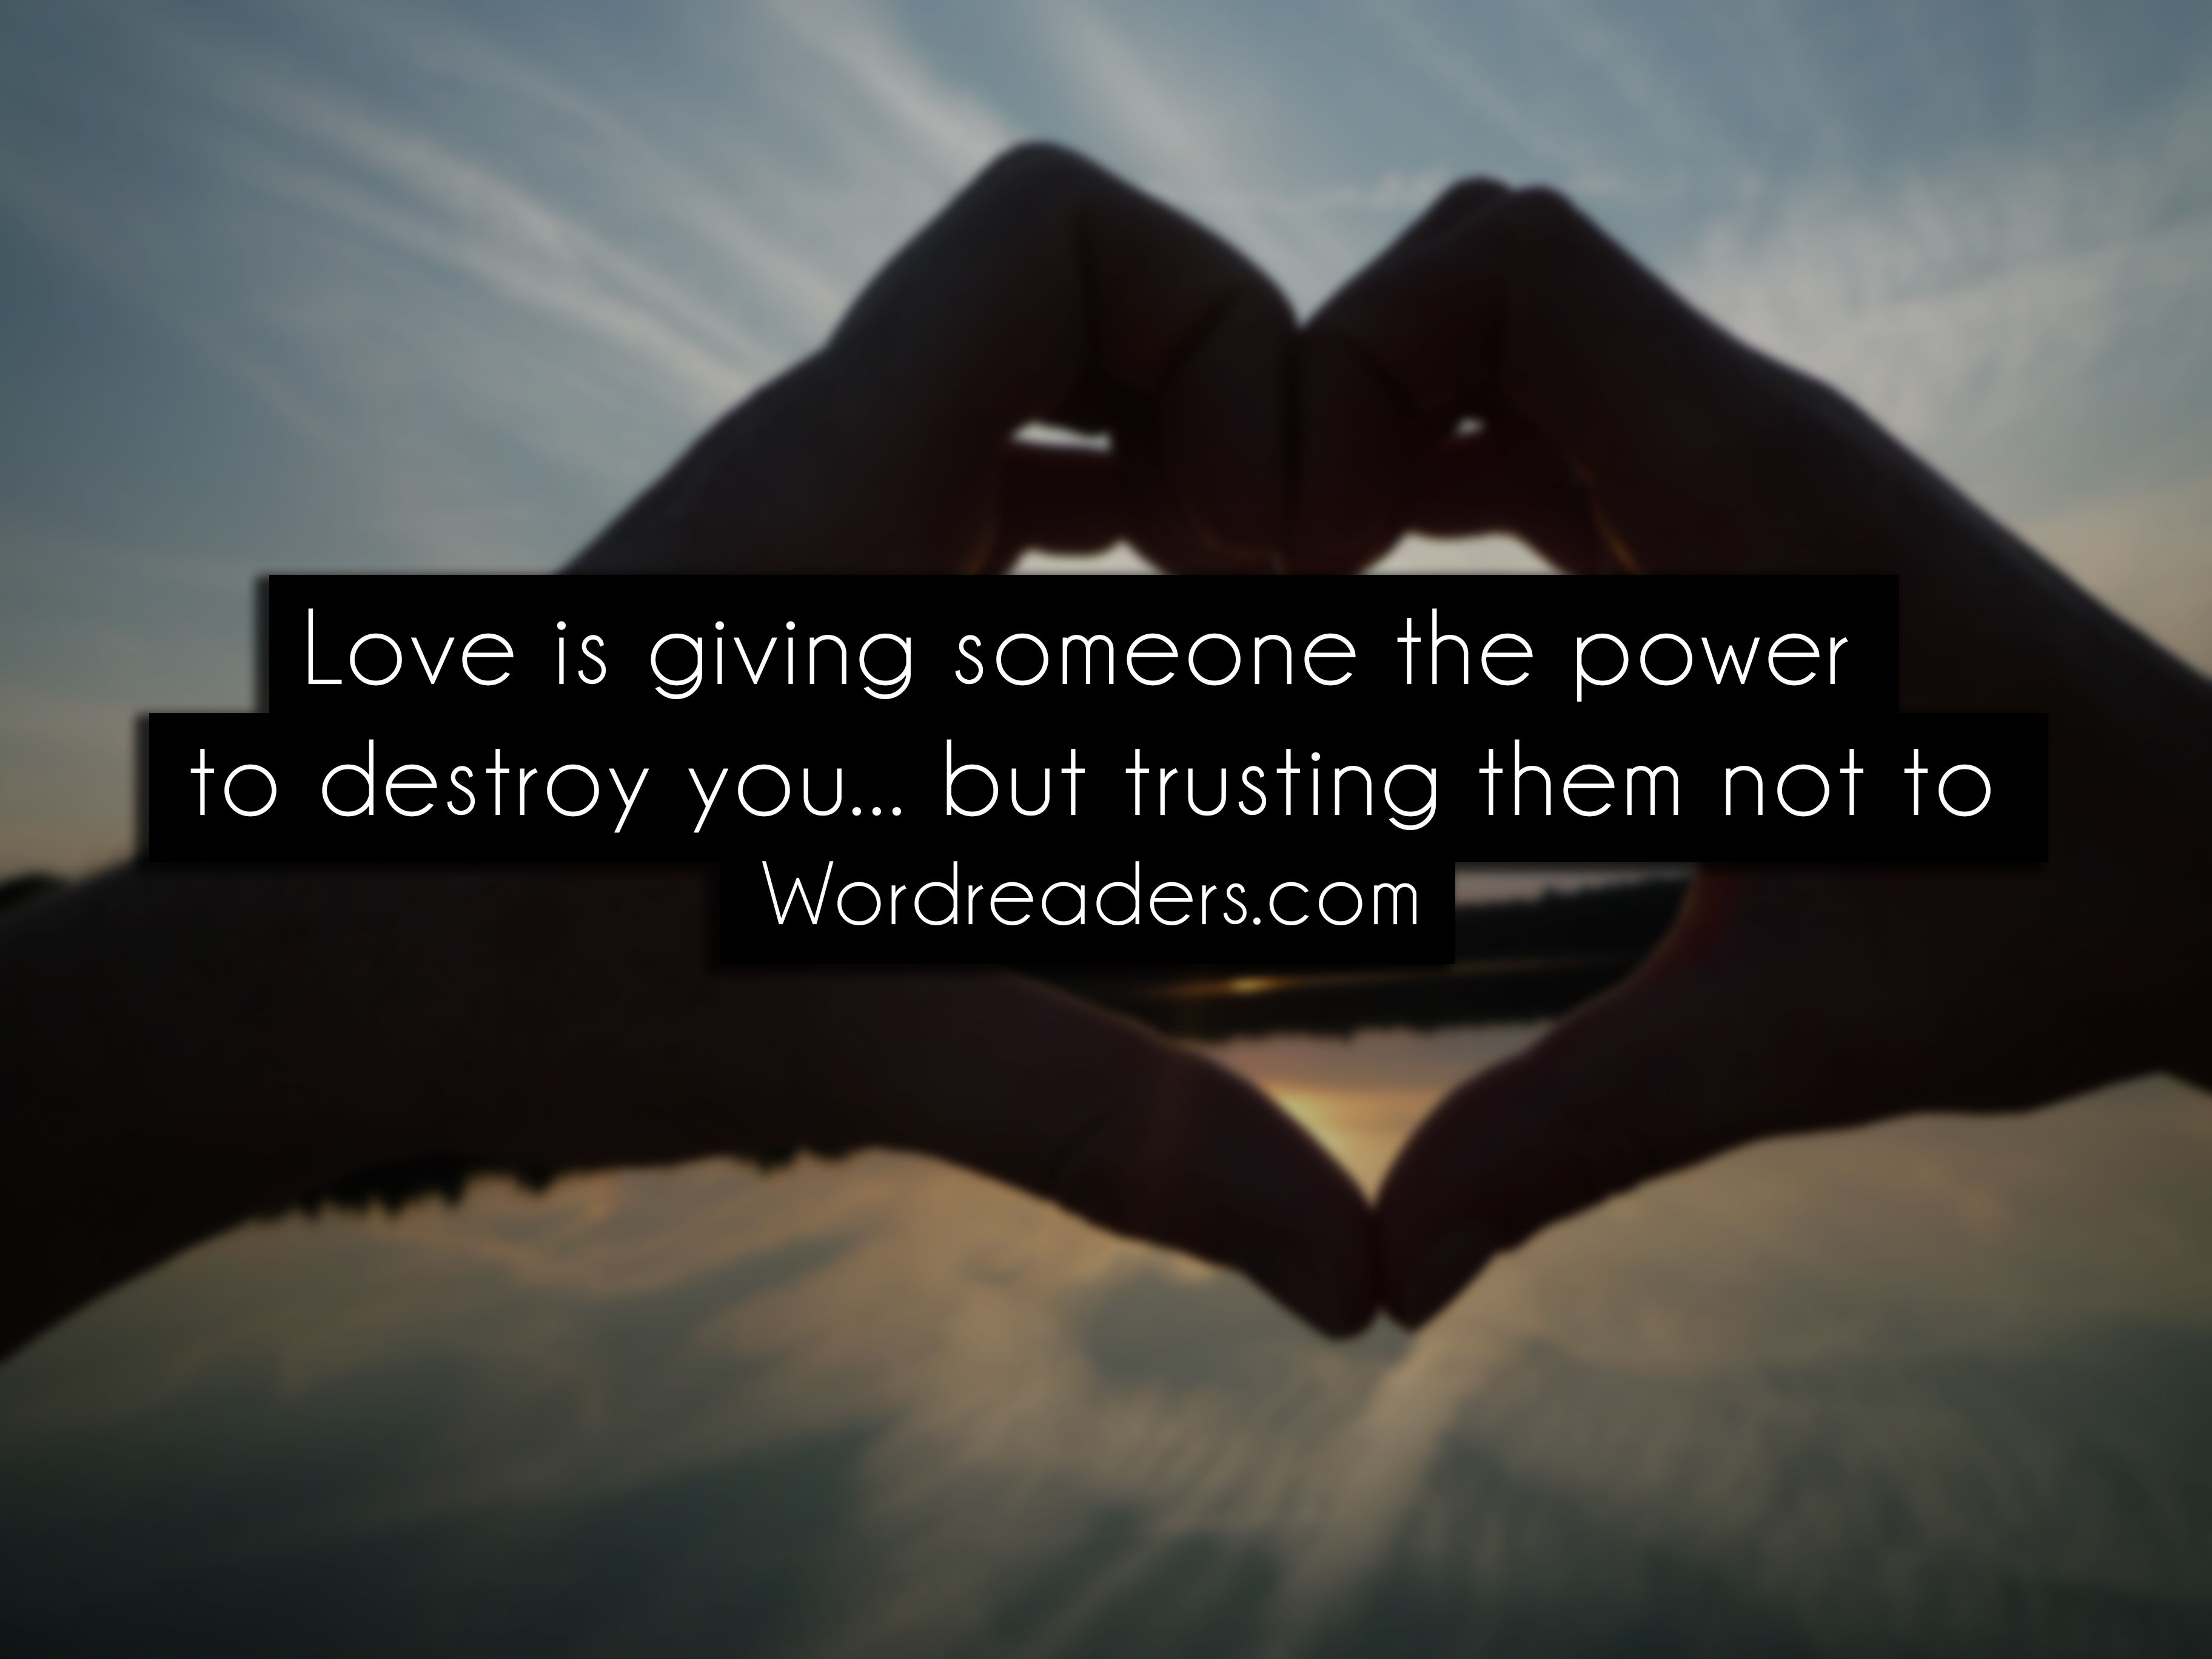 Love is giving someone the power to destroy youbut